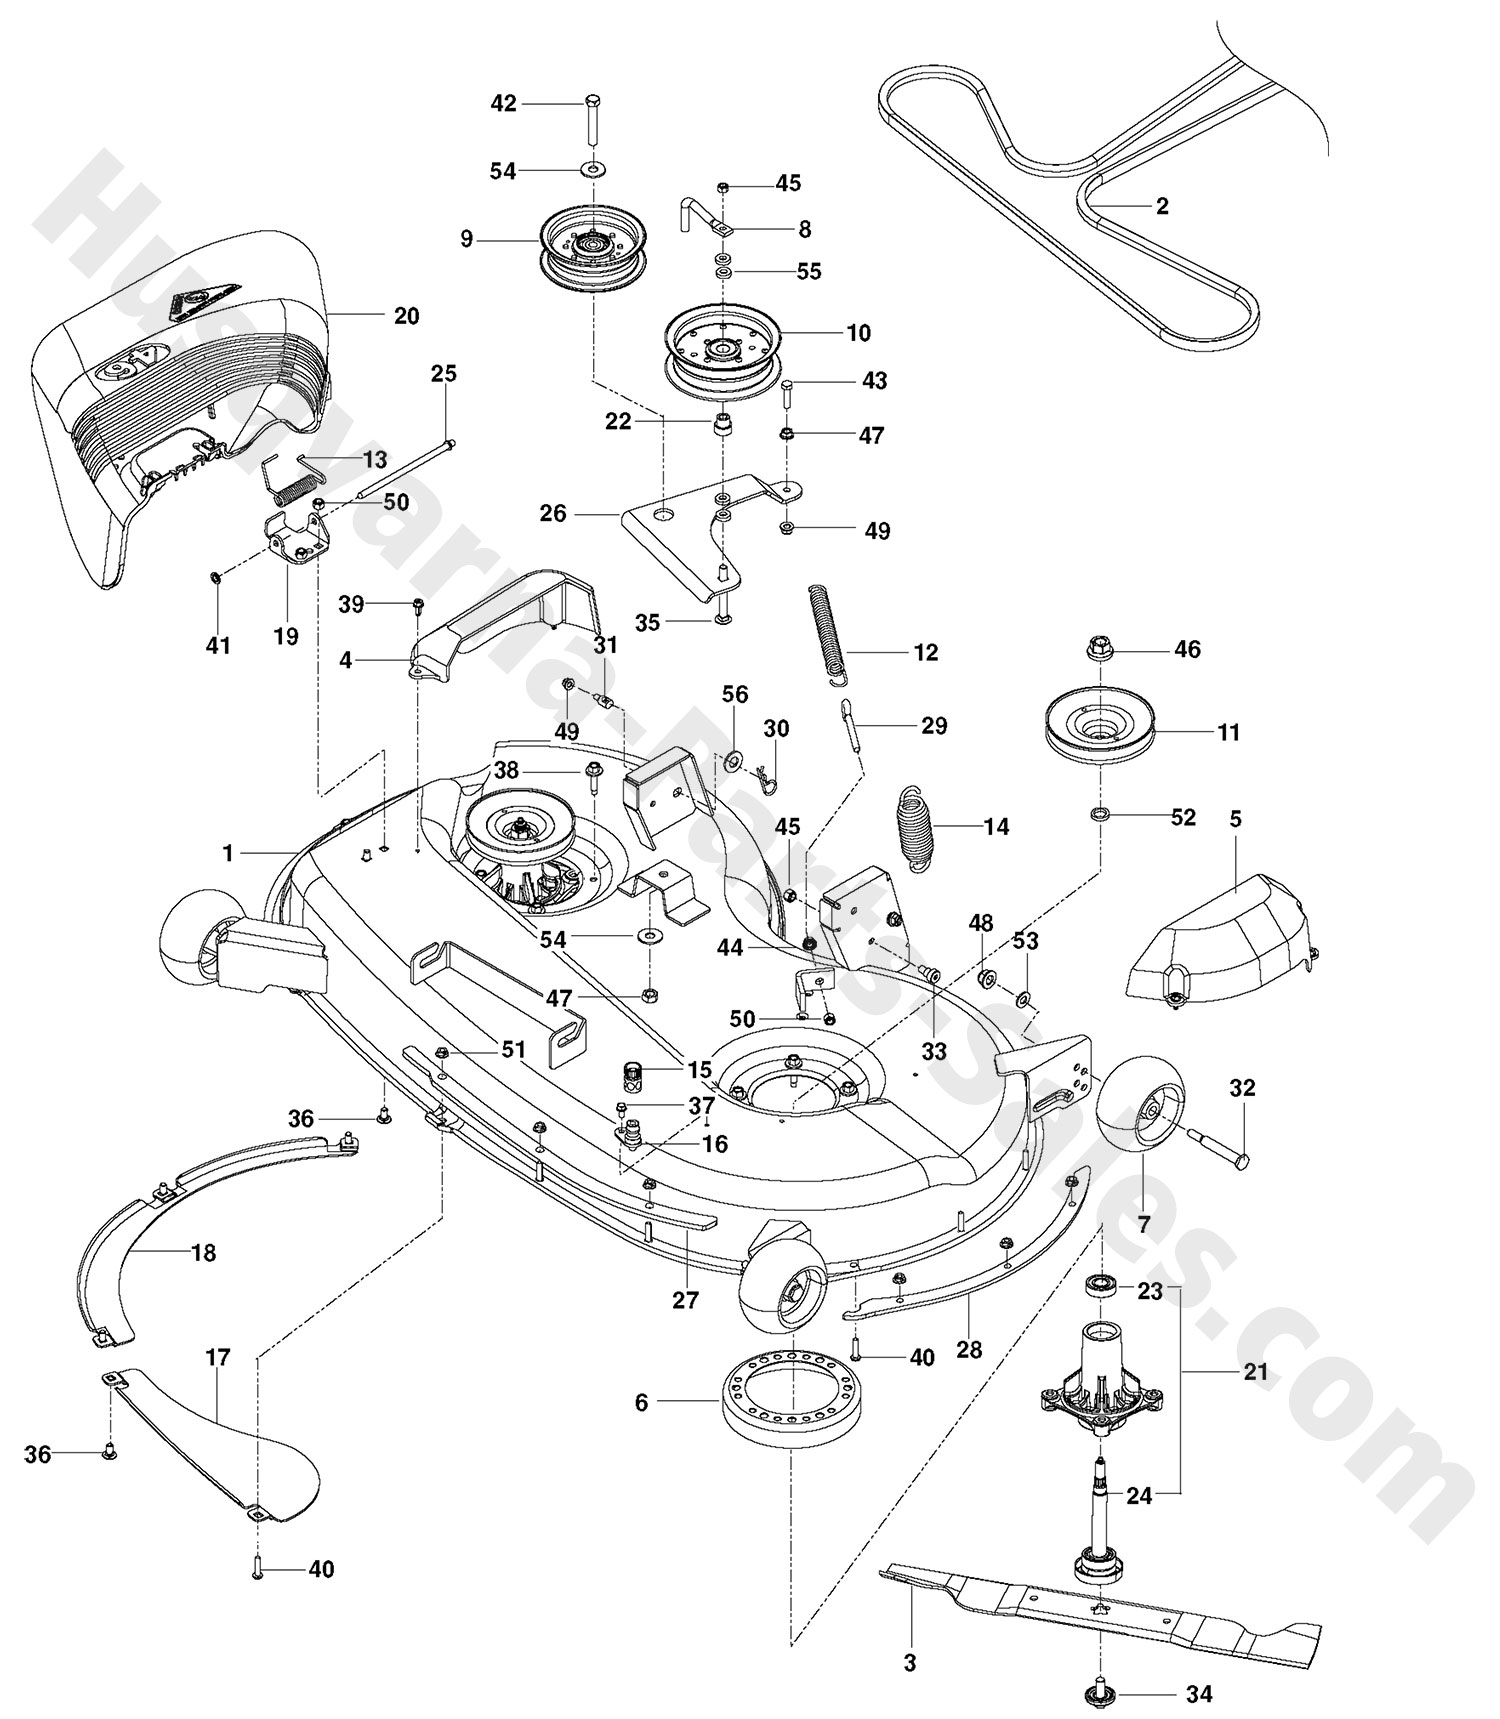 Murray Lawnmower Wiring Diagram together with Wiring Diagram besides Steering furthermore 52 Mower Deck Pulleys Belt Idler Arm Group besides Drive. on riding lawn mower blades